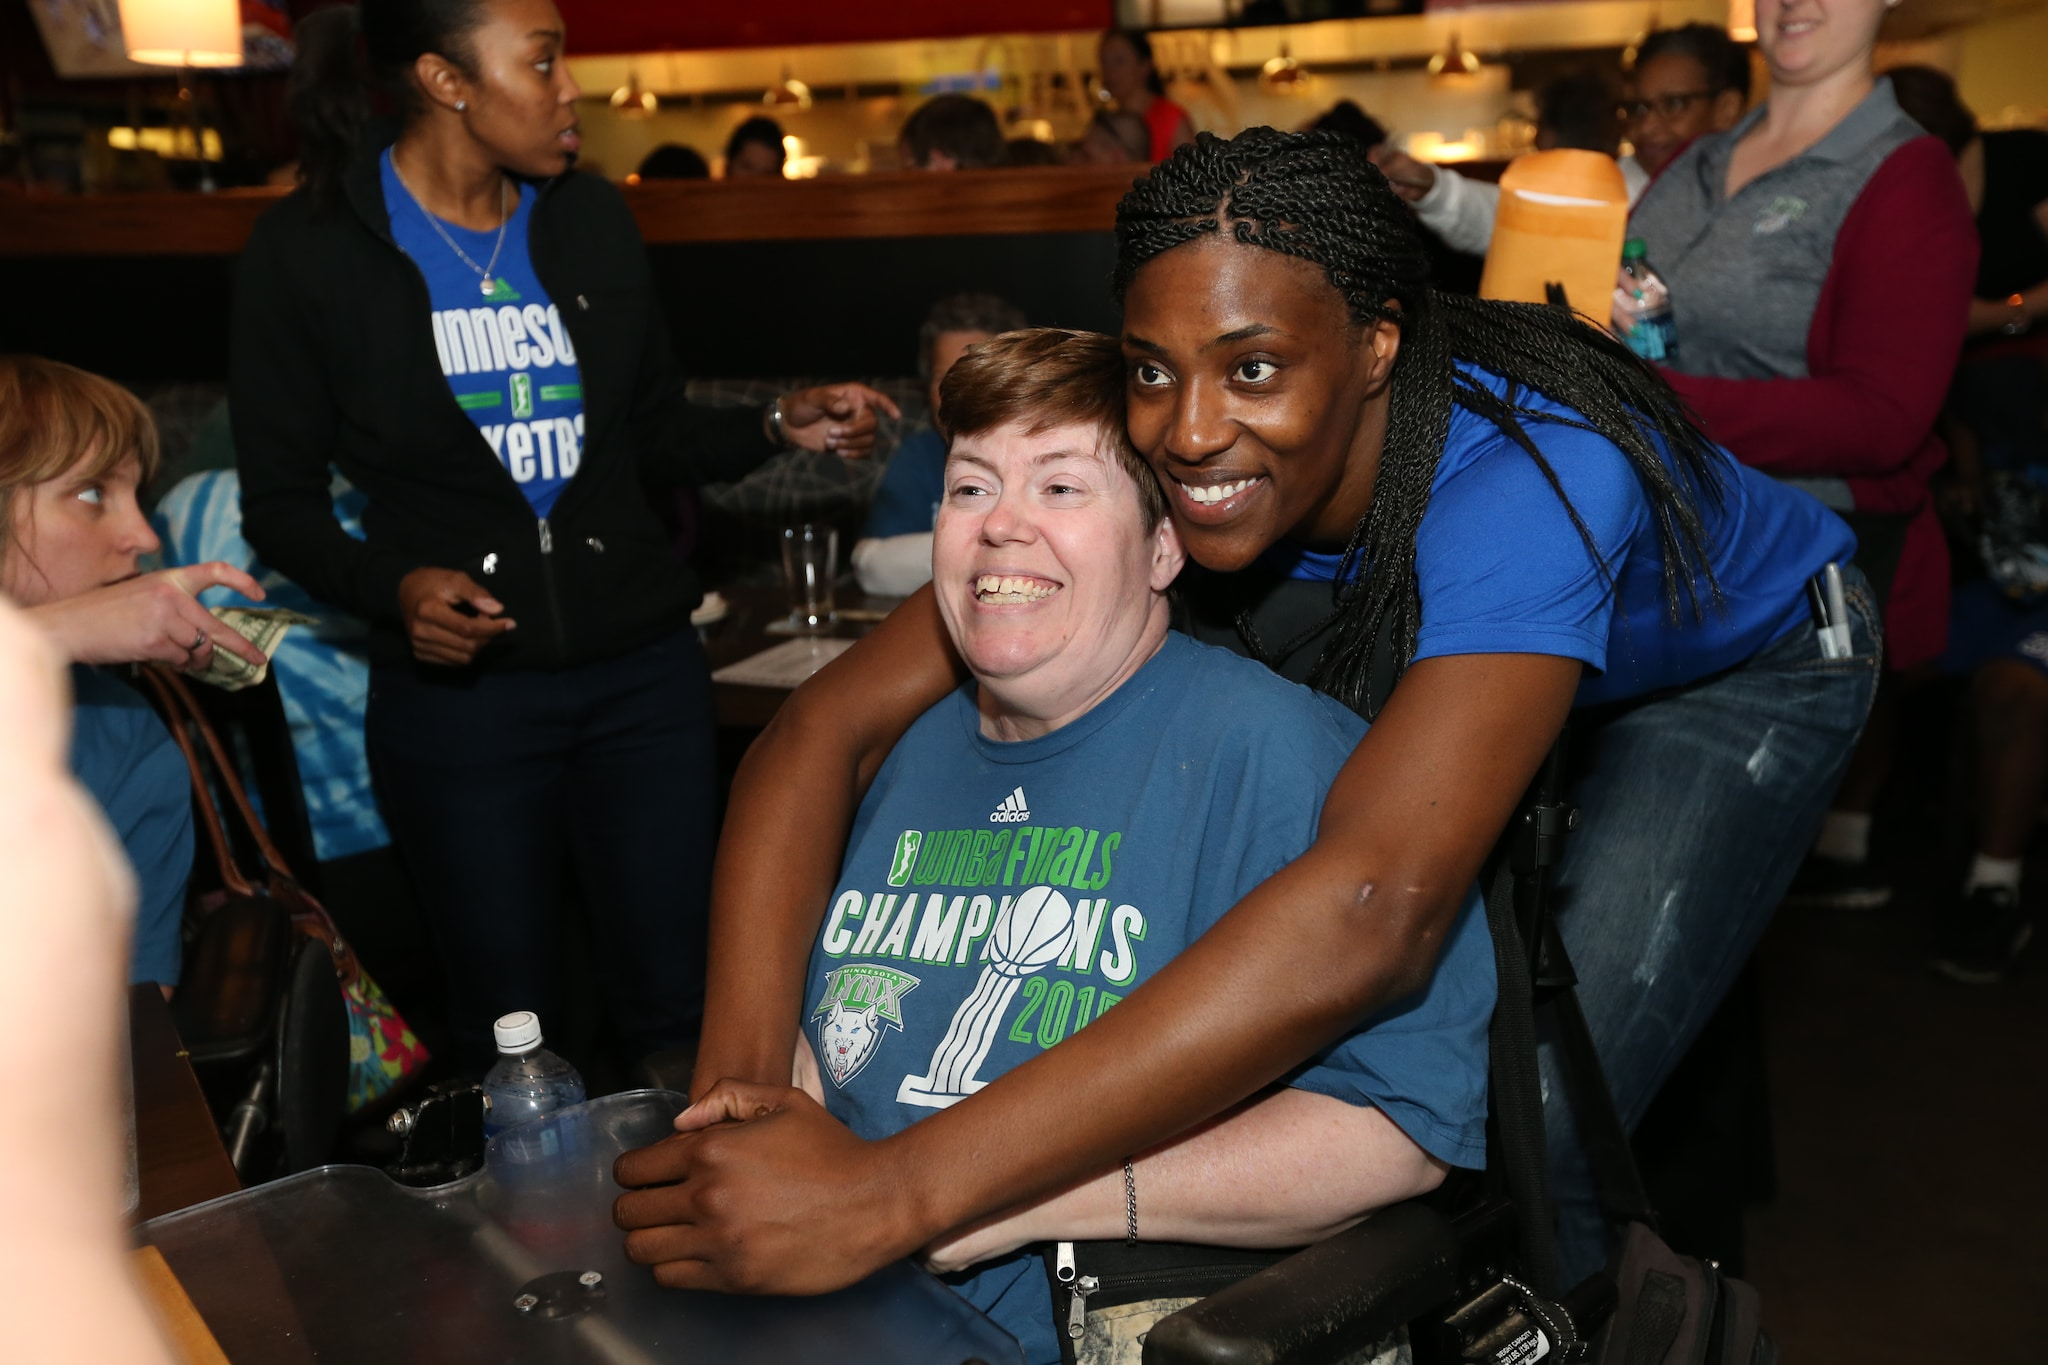 MINNEAPOLIS, MN - MAY 3: Minnesota Lynx players and coaches wait on fansÕ tables, pour drinks, sign autographs and pose for photographs to raise money for the Lynx FastBreak Foundation, which provides and supports hands-on programs for Minnesota youth on May 3, 2016 at Champps Minnetonka restaurant in Minnetonka, Minnesota. NOTE TO USER: User expressly acknowledges and agrees that, by downloading and or using this Photograph, user is consenting to the terms and conditions of the Getty Images License Agreement. Mandatory Copyright Notice: Copyright 2016 NBAE (Photo by David Sherman/NBAE via Getty Images)